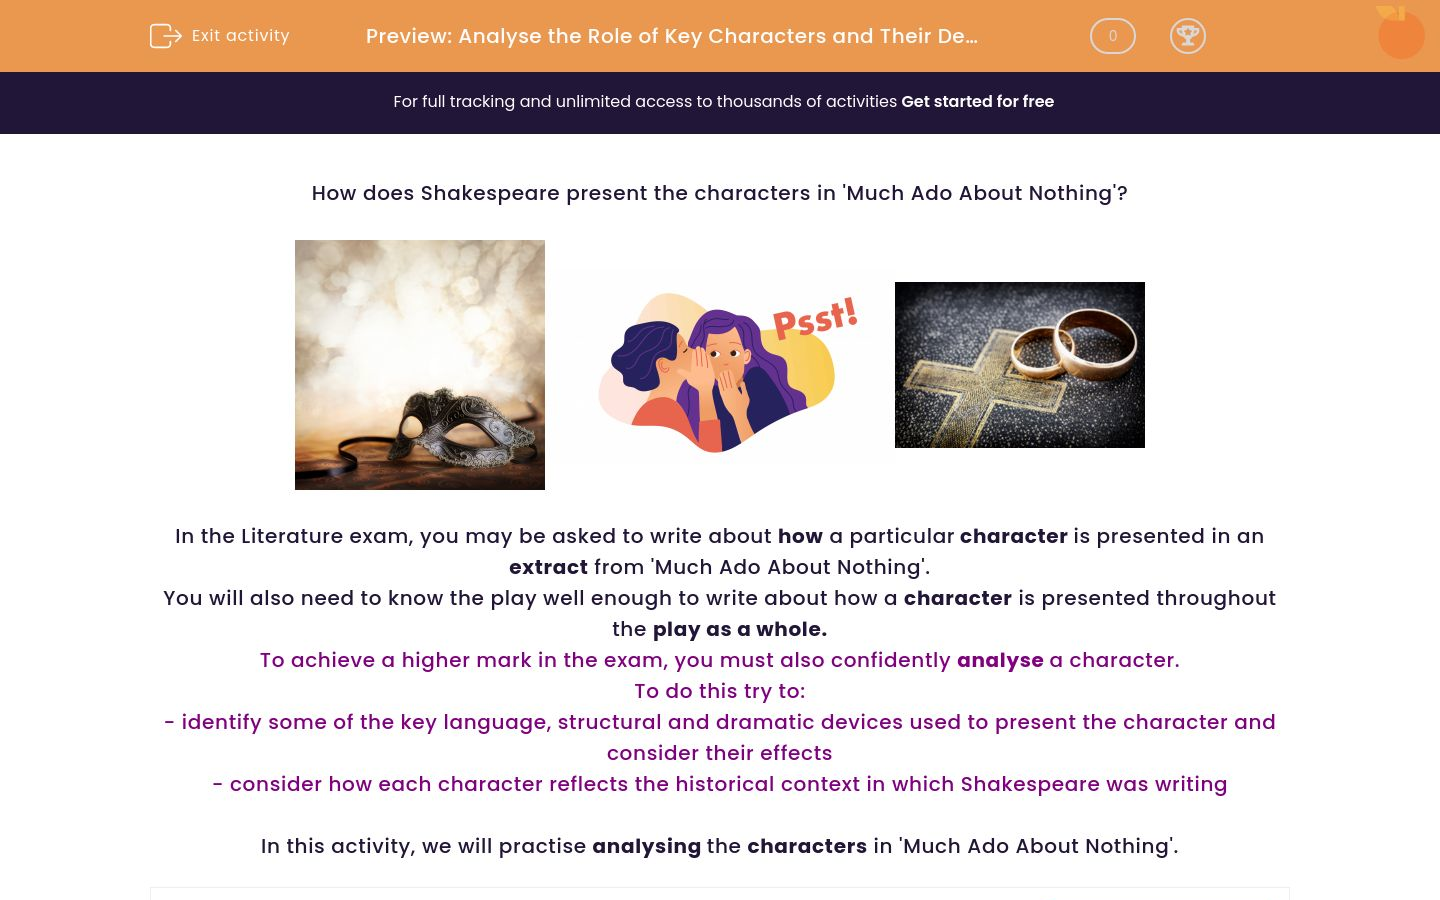 'Analyse the Role of Key Characters and Their Development in 'Much Ado About Nothing'' worksheet